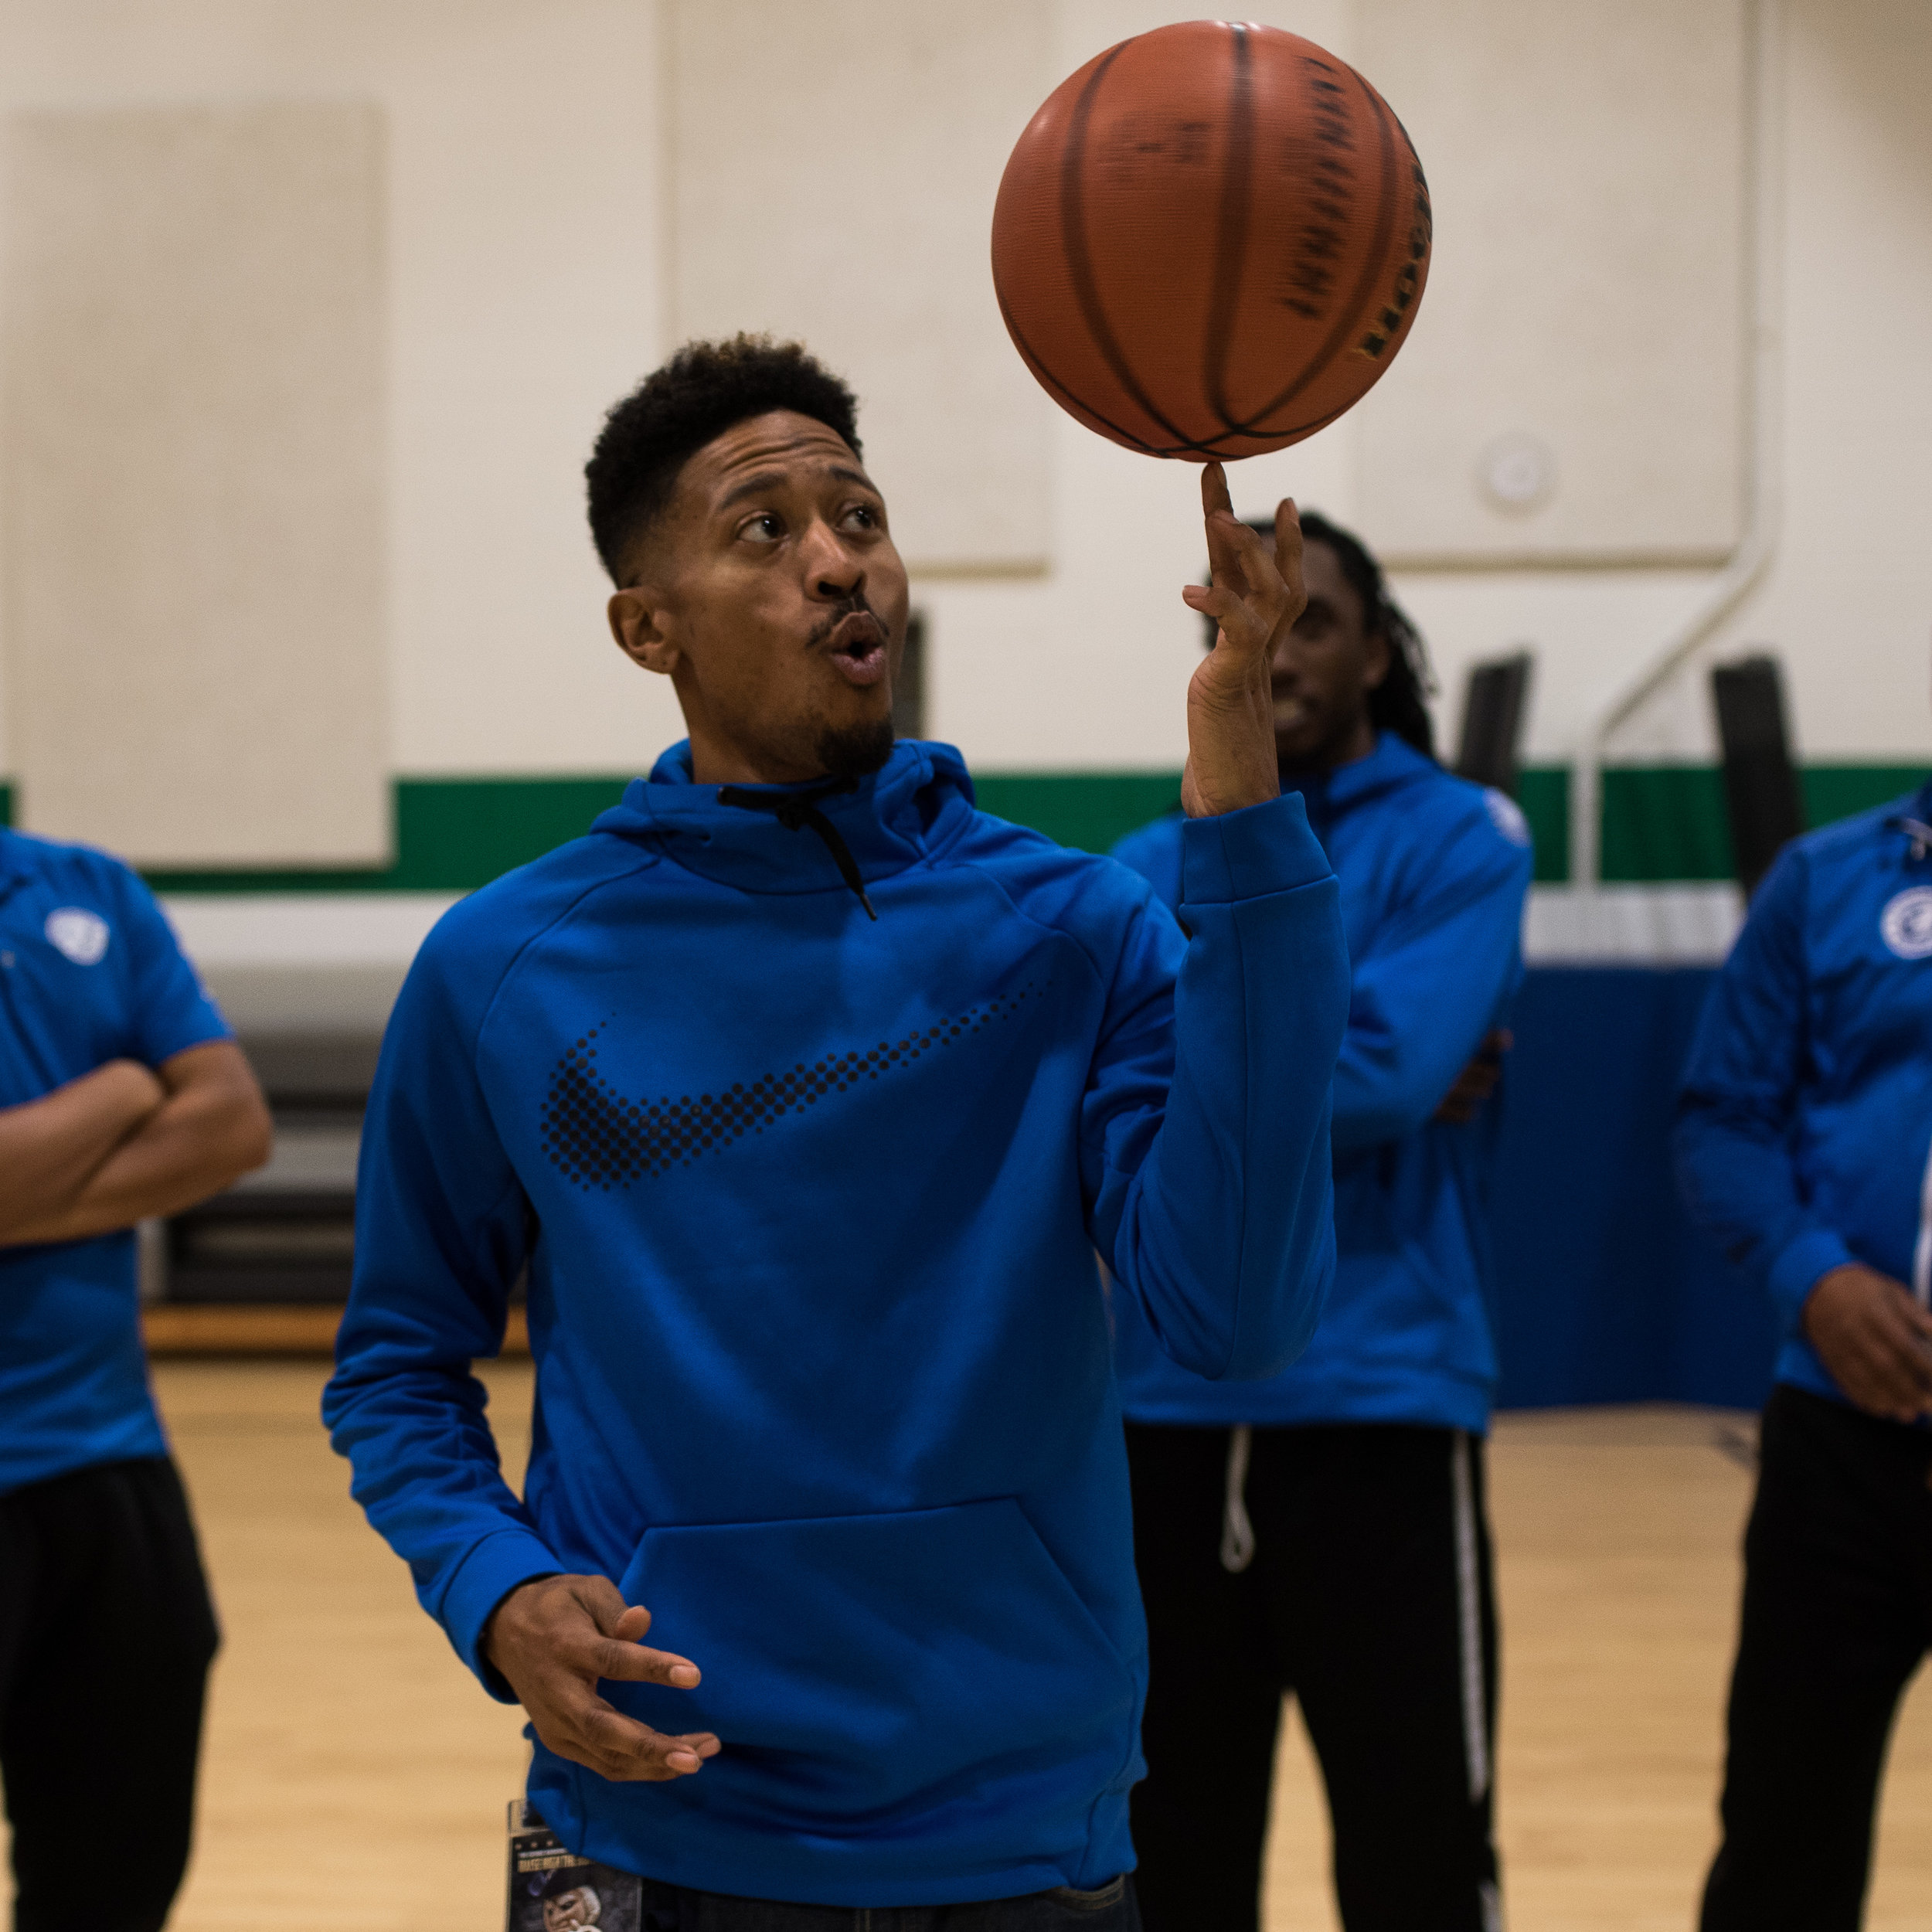 Coach T - Dior Toney began working with his longtime friend Omar Griffin at Fundamentals Academy to help kids Discover the Athlete. He Played on GWU Men's Basketball team, which in 2006 was ranked as high as 6th in the nation and reached the sweet sixteen in the NCAA tournament.